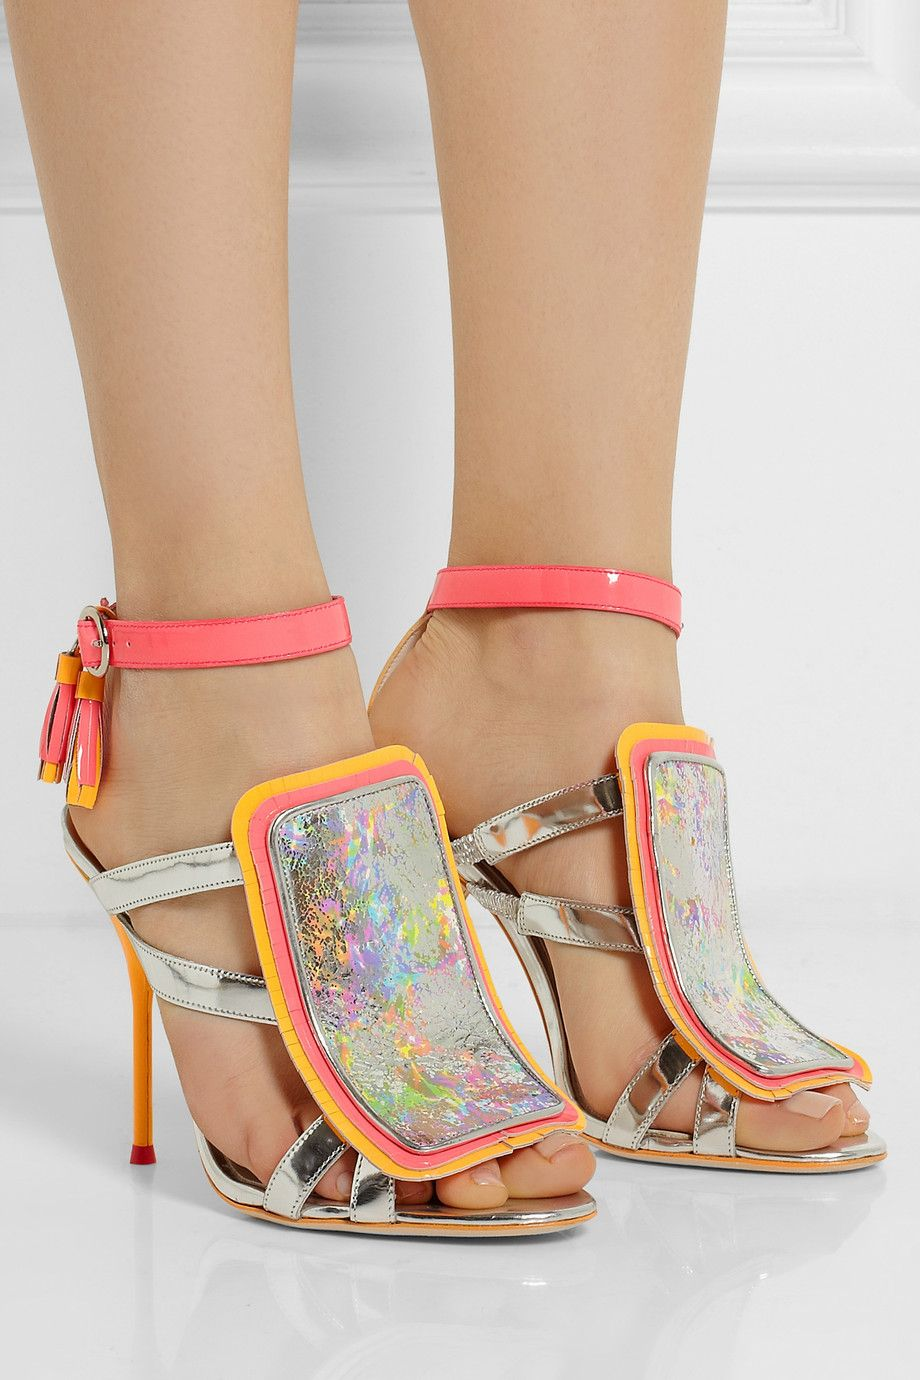 Sophia Webster Marissa metallic and neon leather sandals loved by  ChicCooltured f774d18eaea